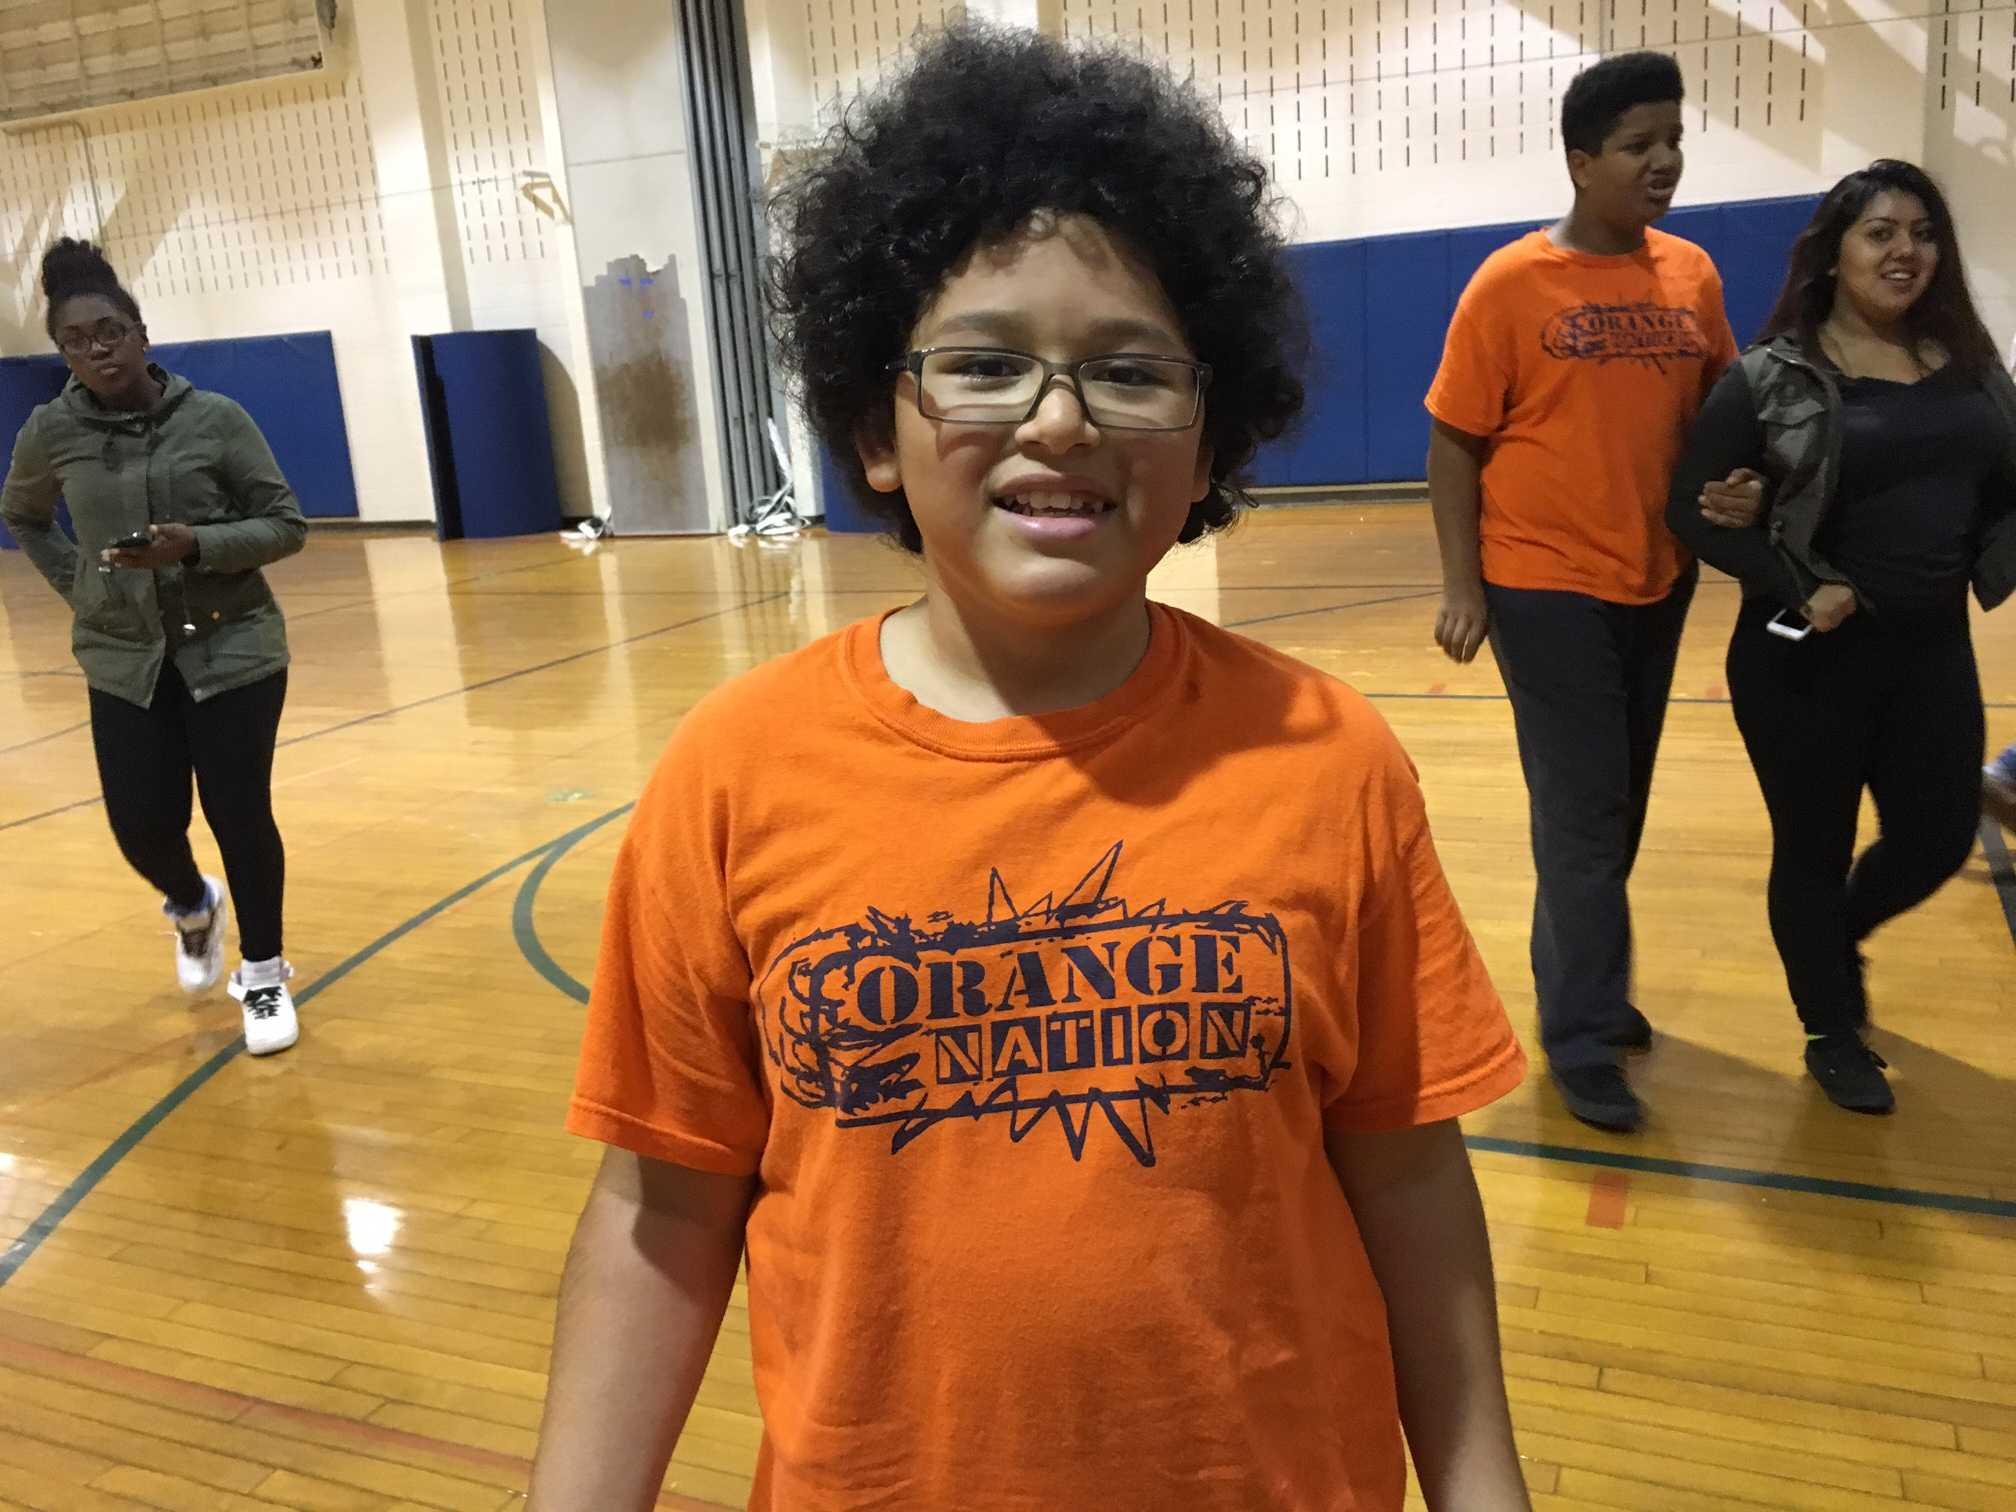 Freshman Victor Quintanilla wears his Orange Nation shirt in PE class